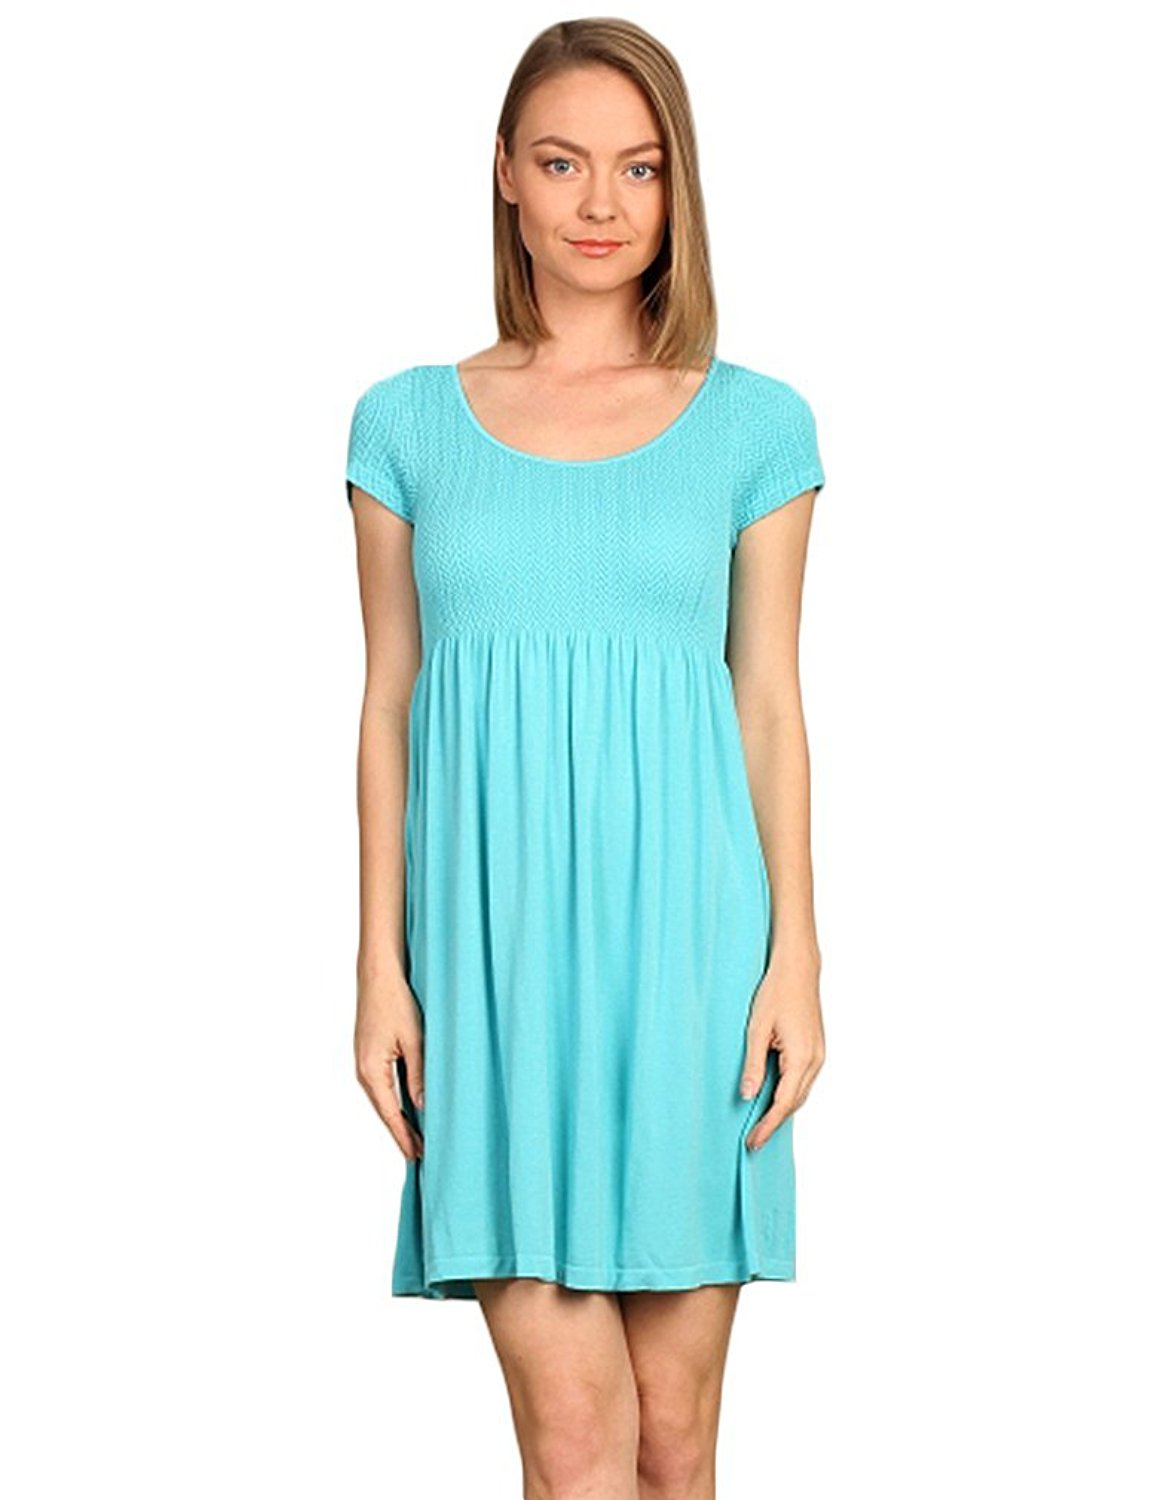 M. Rena Cap Sleeve Scoop Neck Knit Babydoll Mini Dress